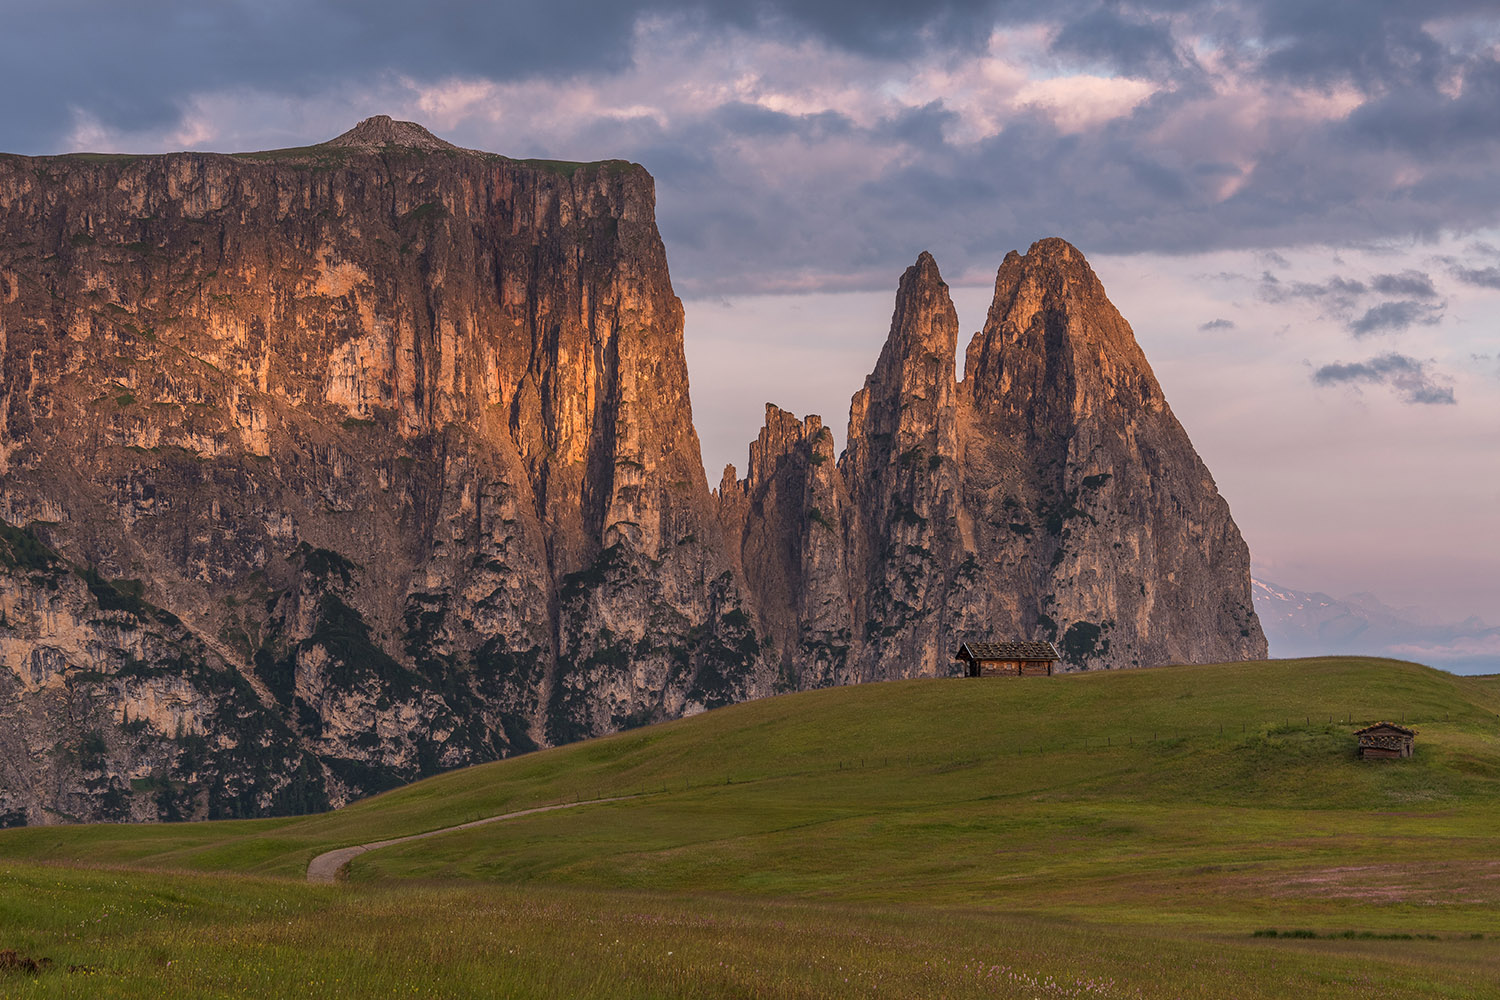 Cottages at Alpe di Siusi in the Dolomites example image 1